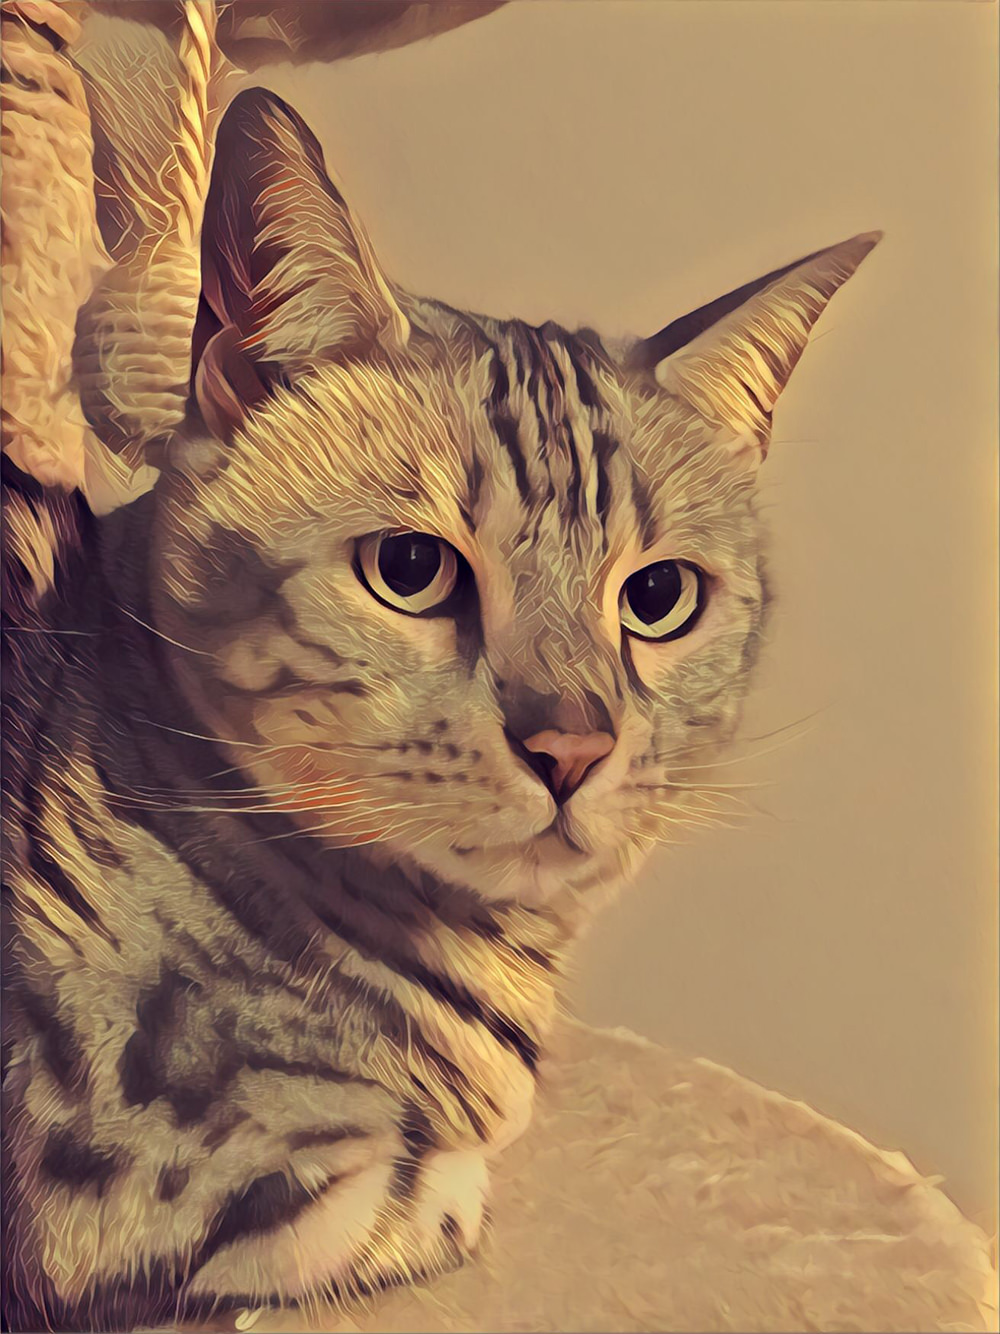 Prisma Photo Editorm - Cat photo edited